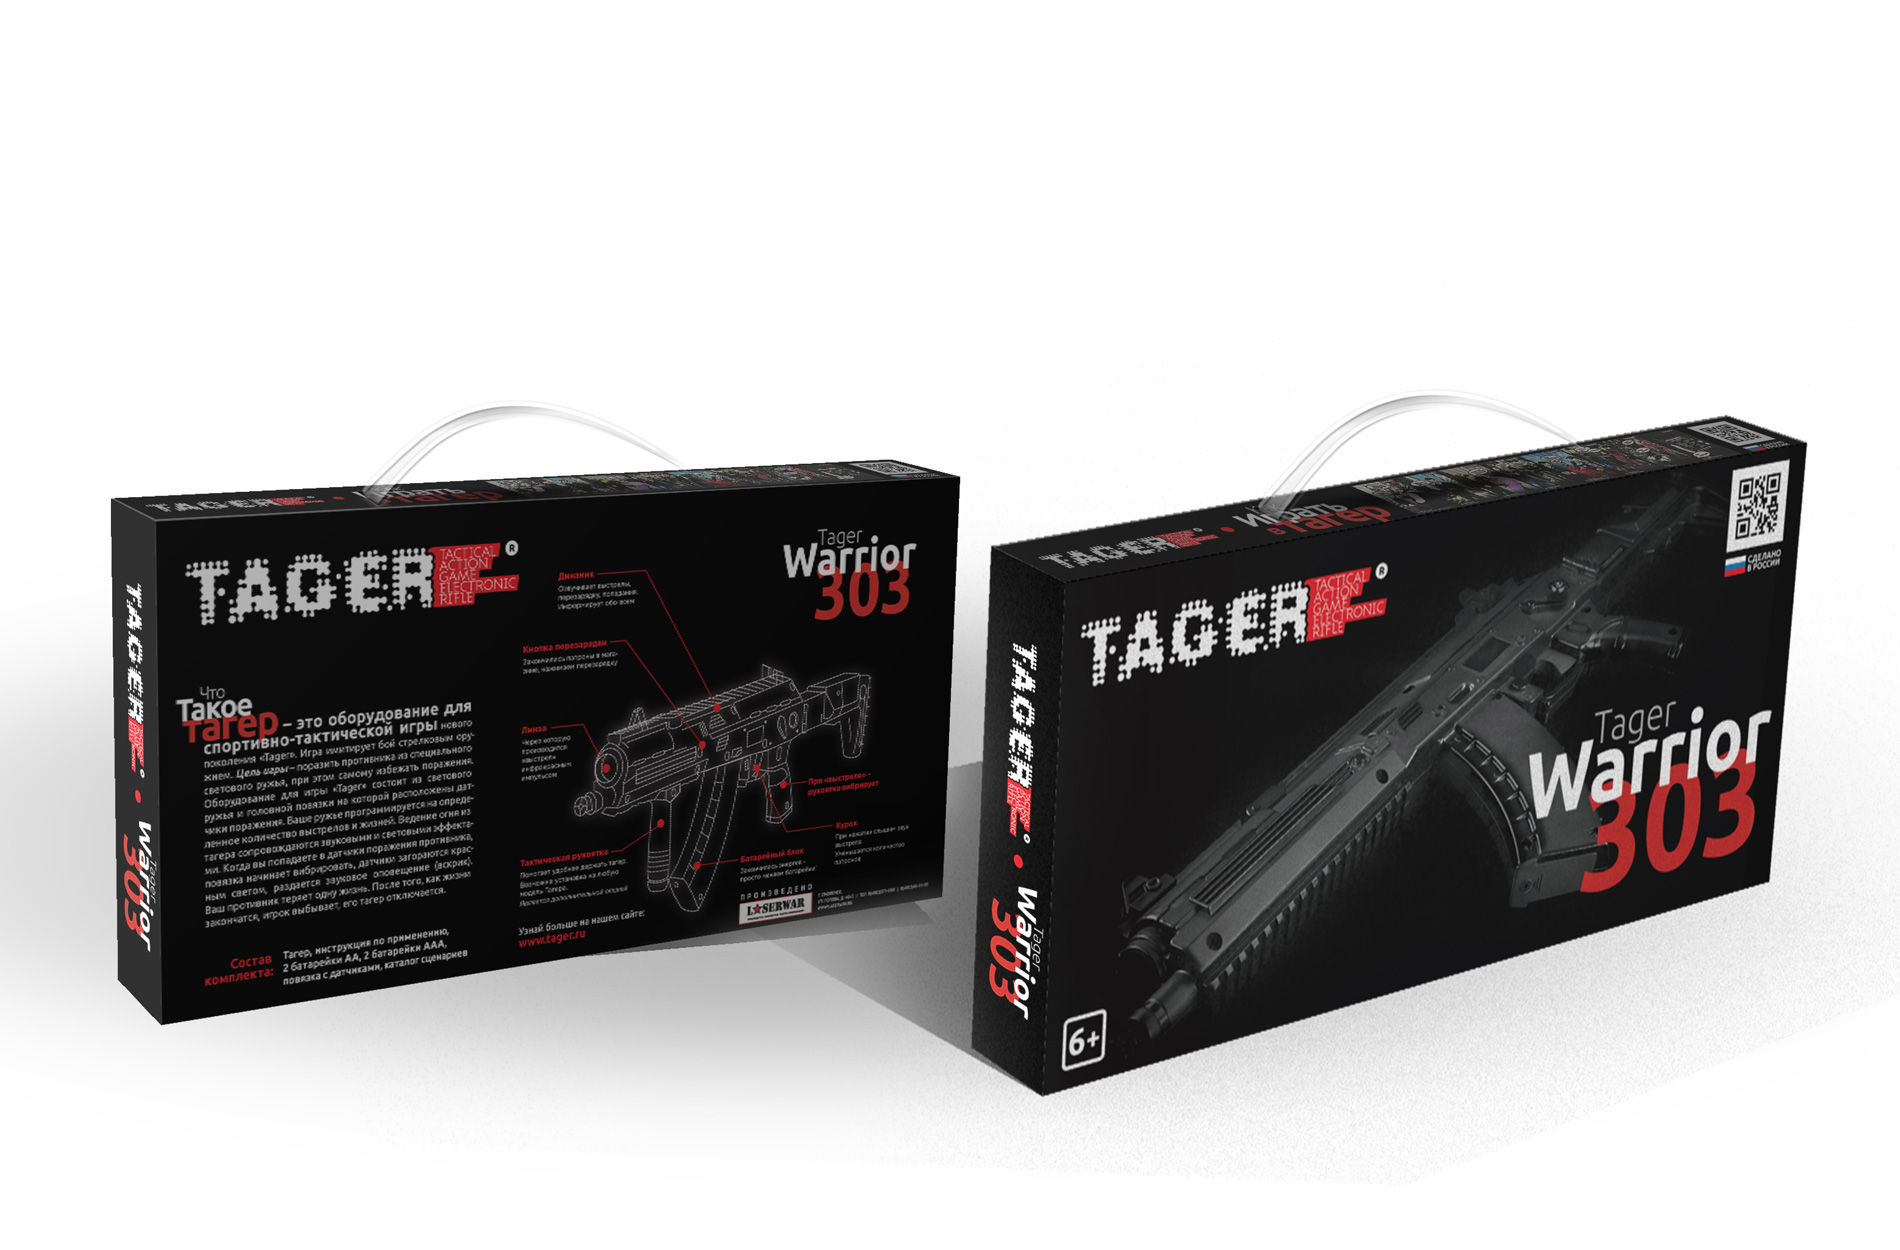 TAGER Warrior 303